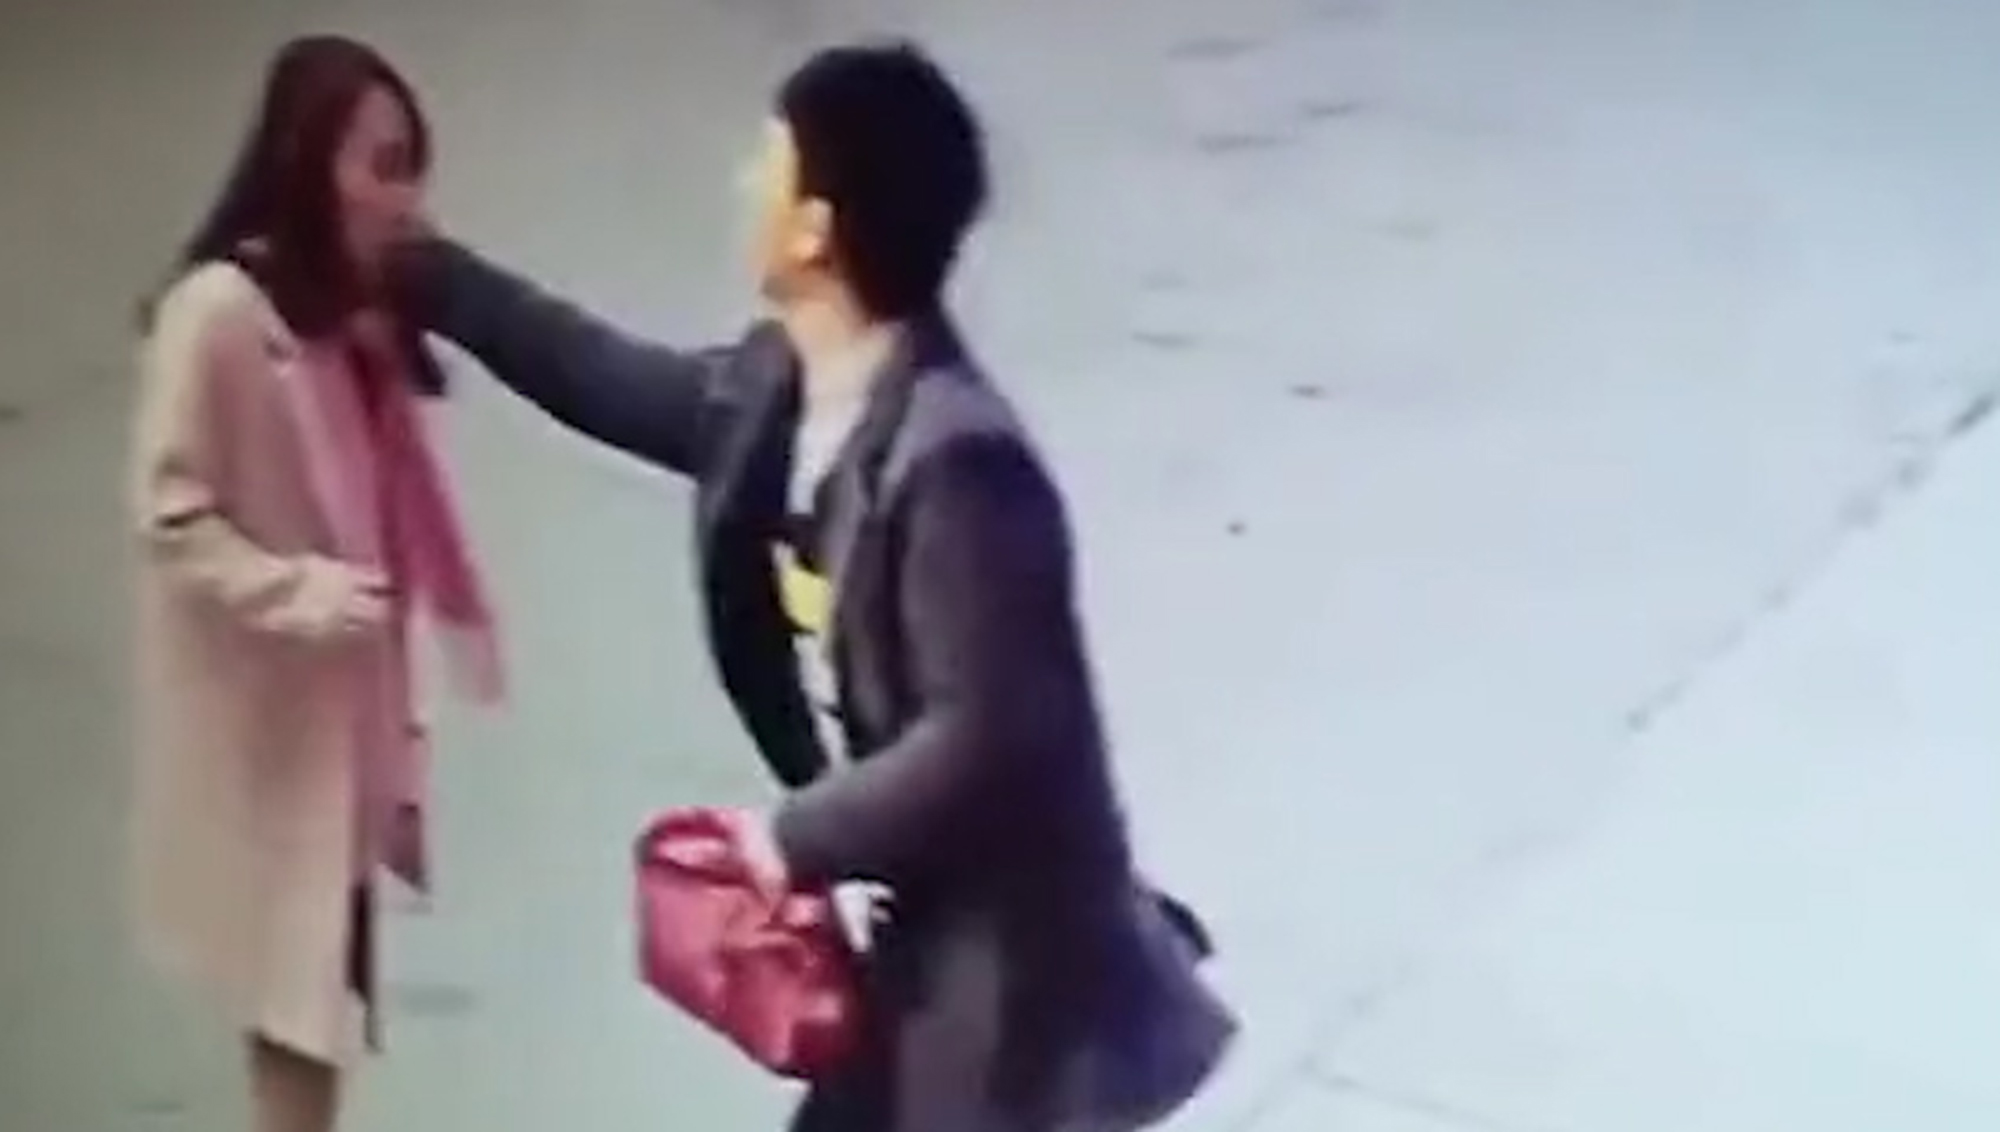 Shop Owner Travels 530 Miles To Punch Woman Who Left Bad Review AsiaWire VendorBeating 01